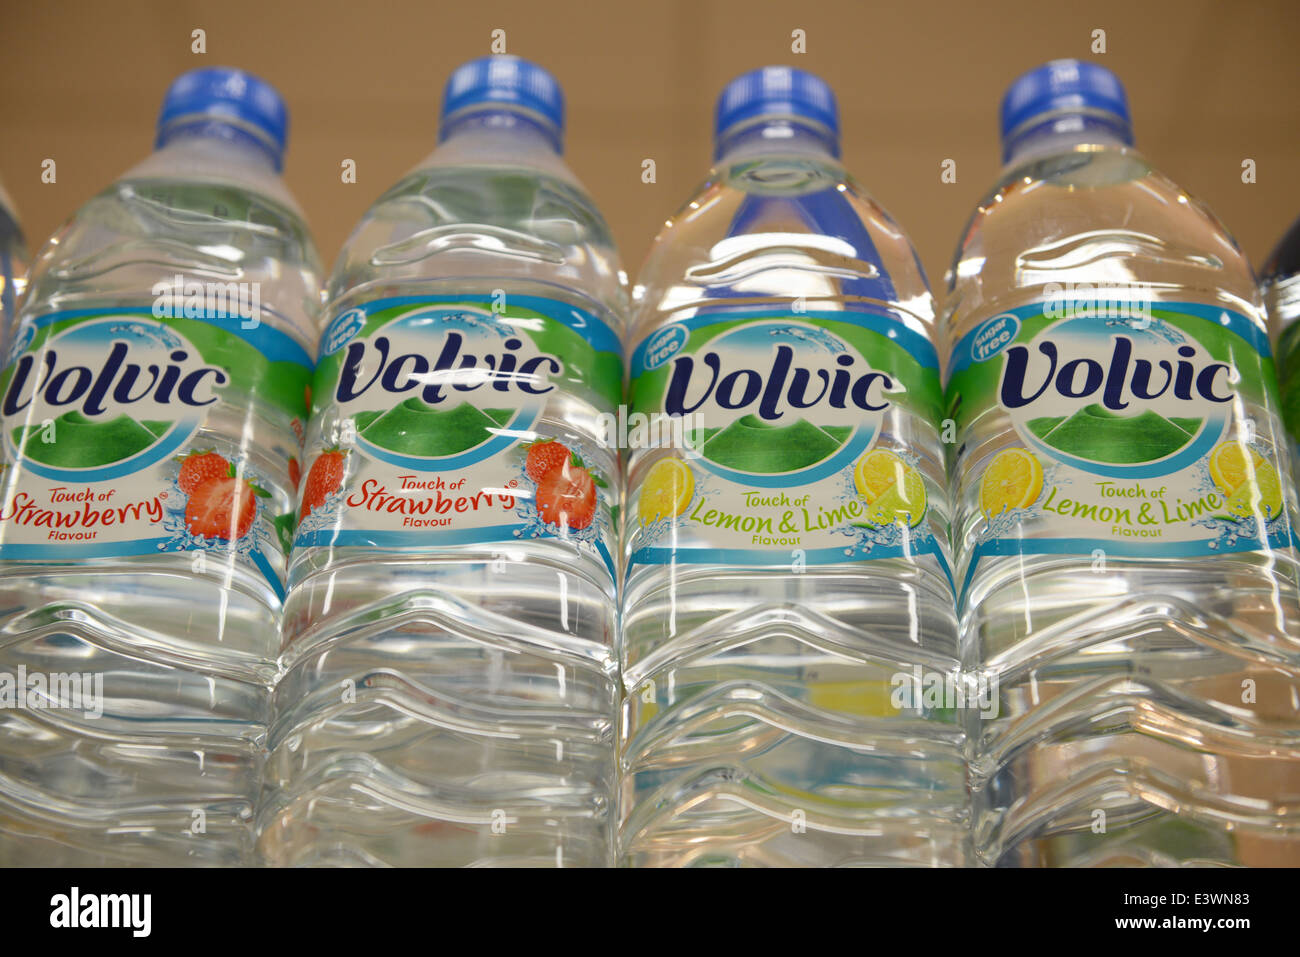 Volvic flavoured mineral water - Stock Image